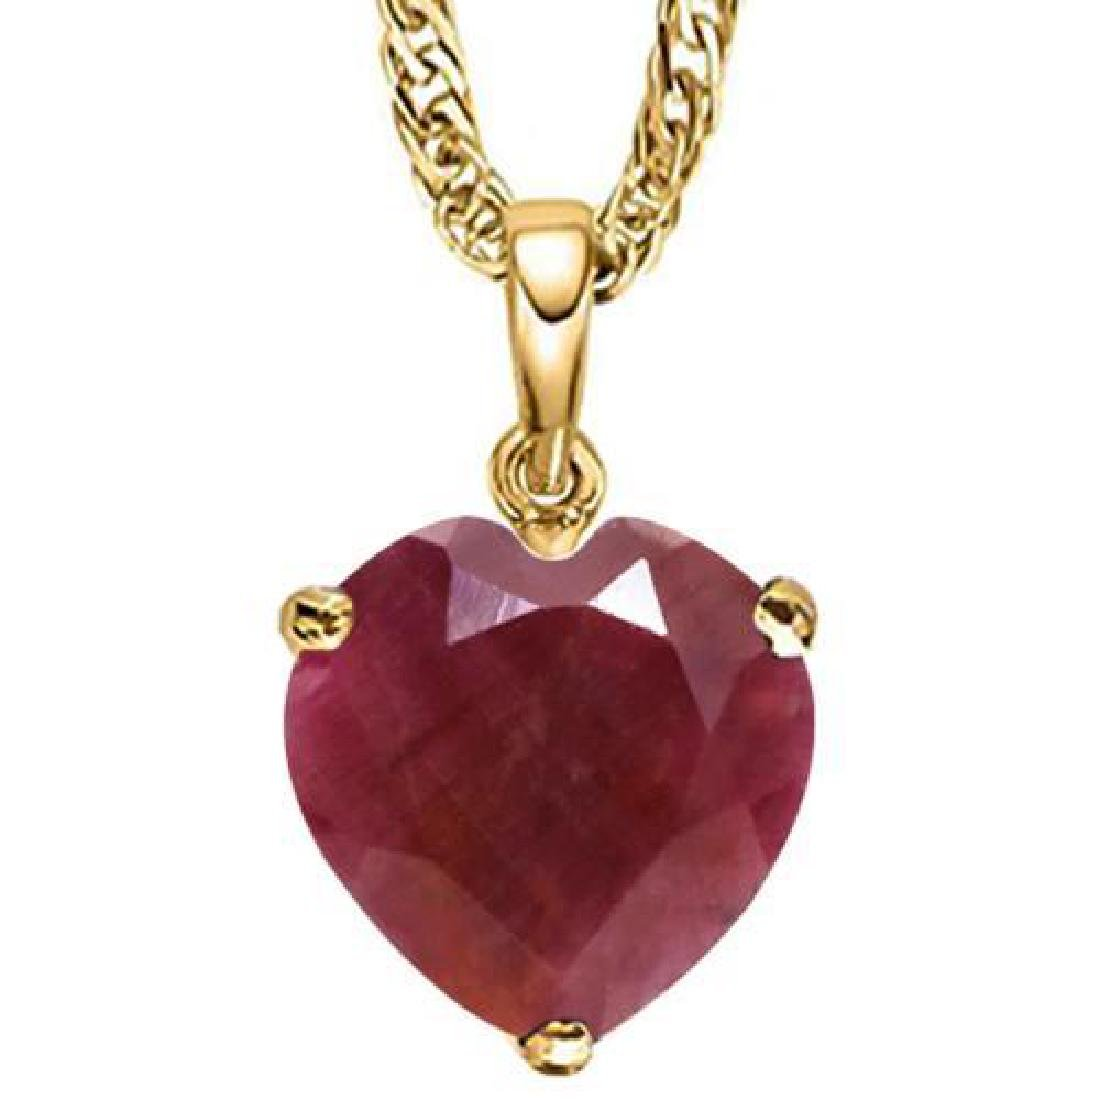 0.9 CTW RUBY 10K SOLID YELLOW GOLD HEART SHAPE PENDANT